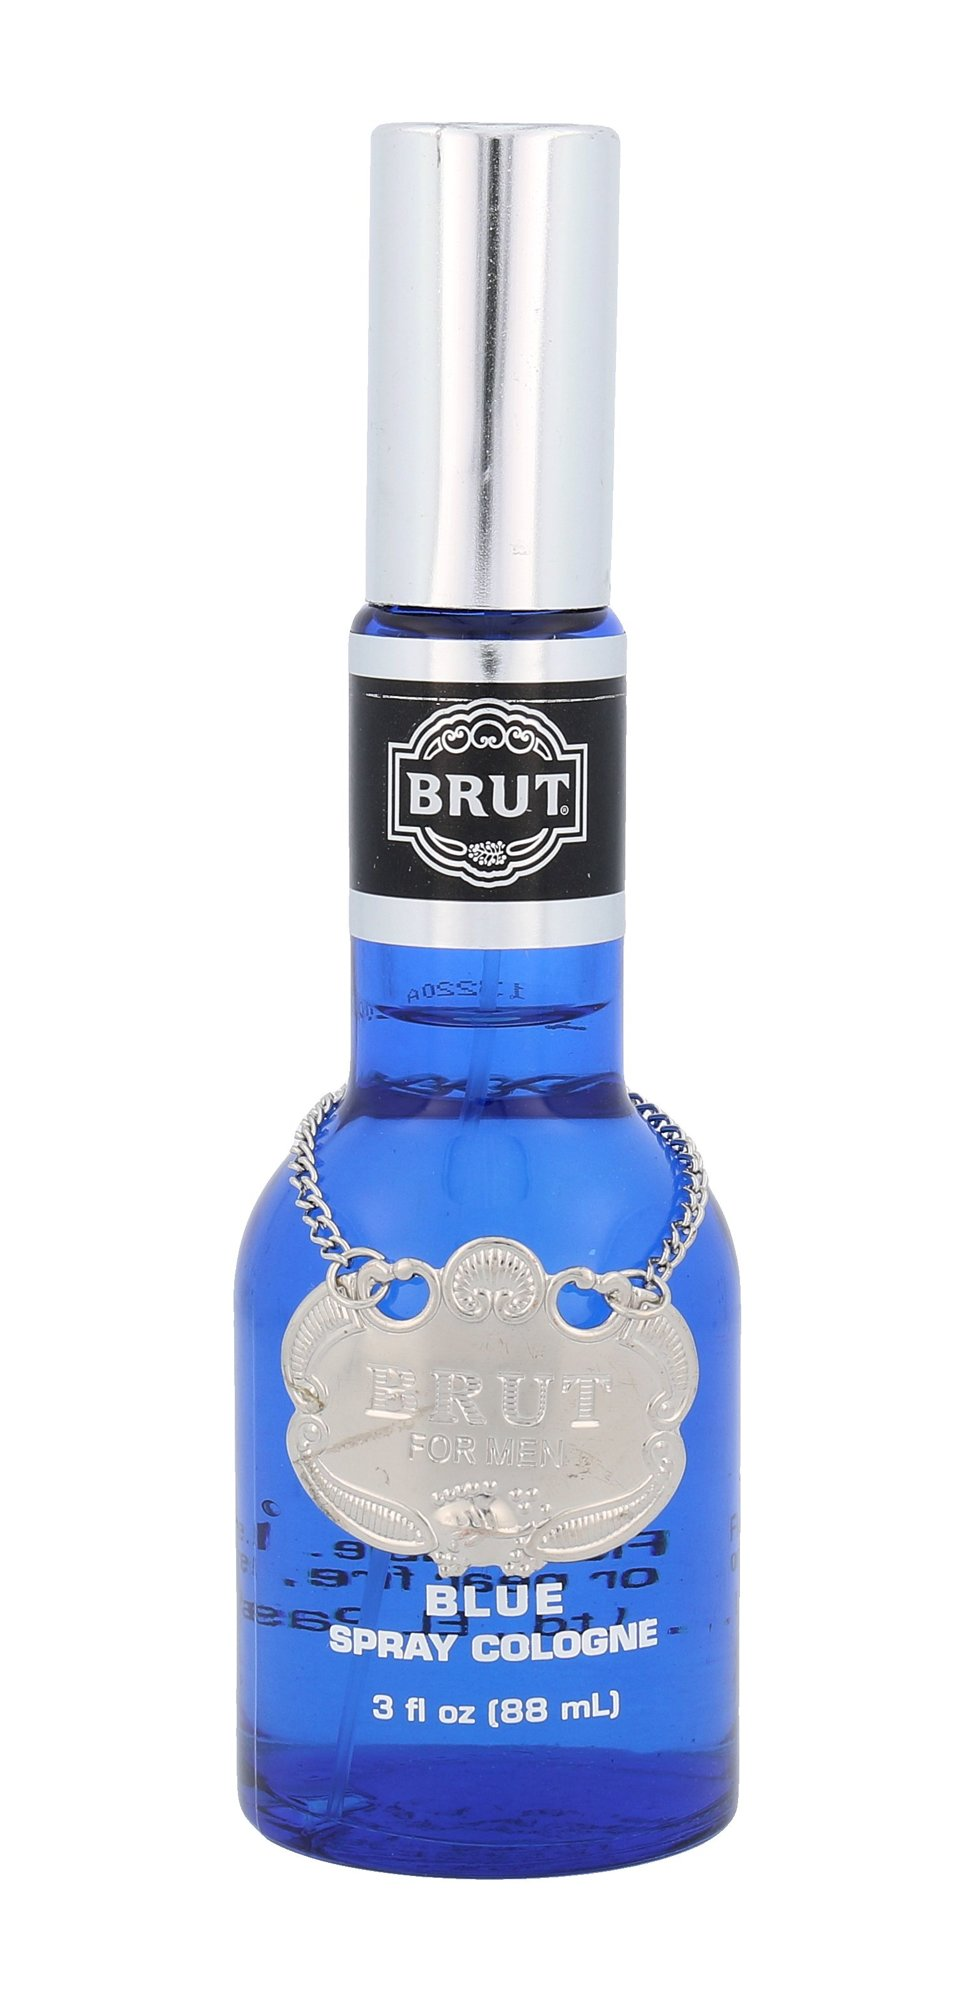 Brut Blue Cologne 88ml